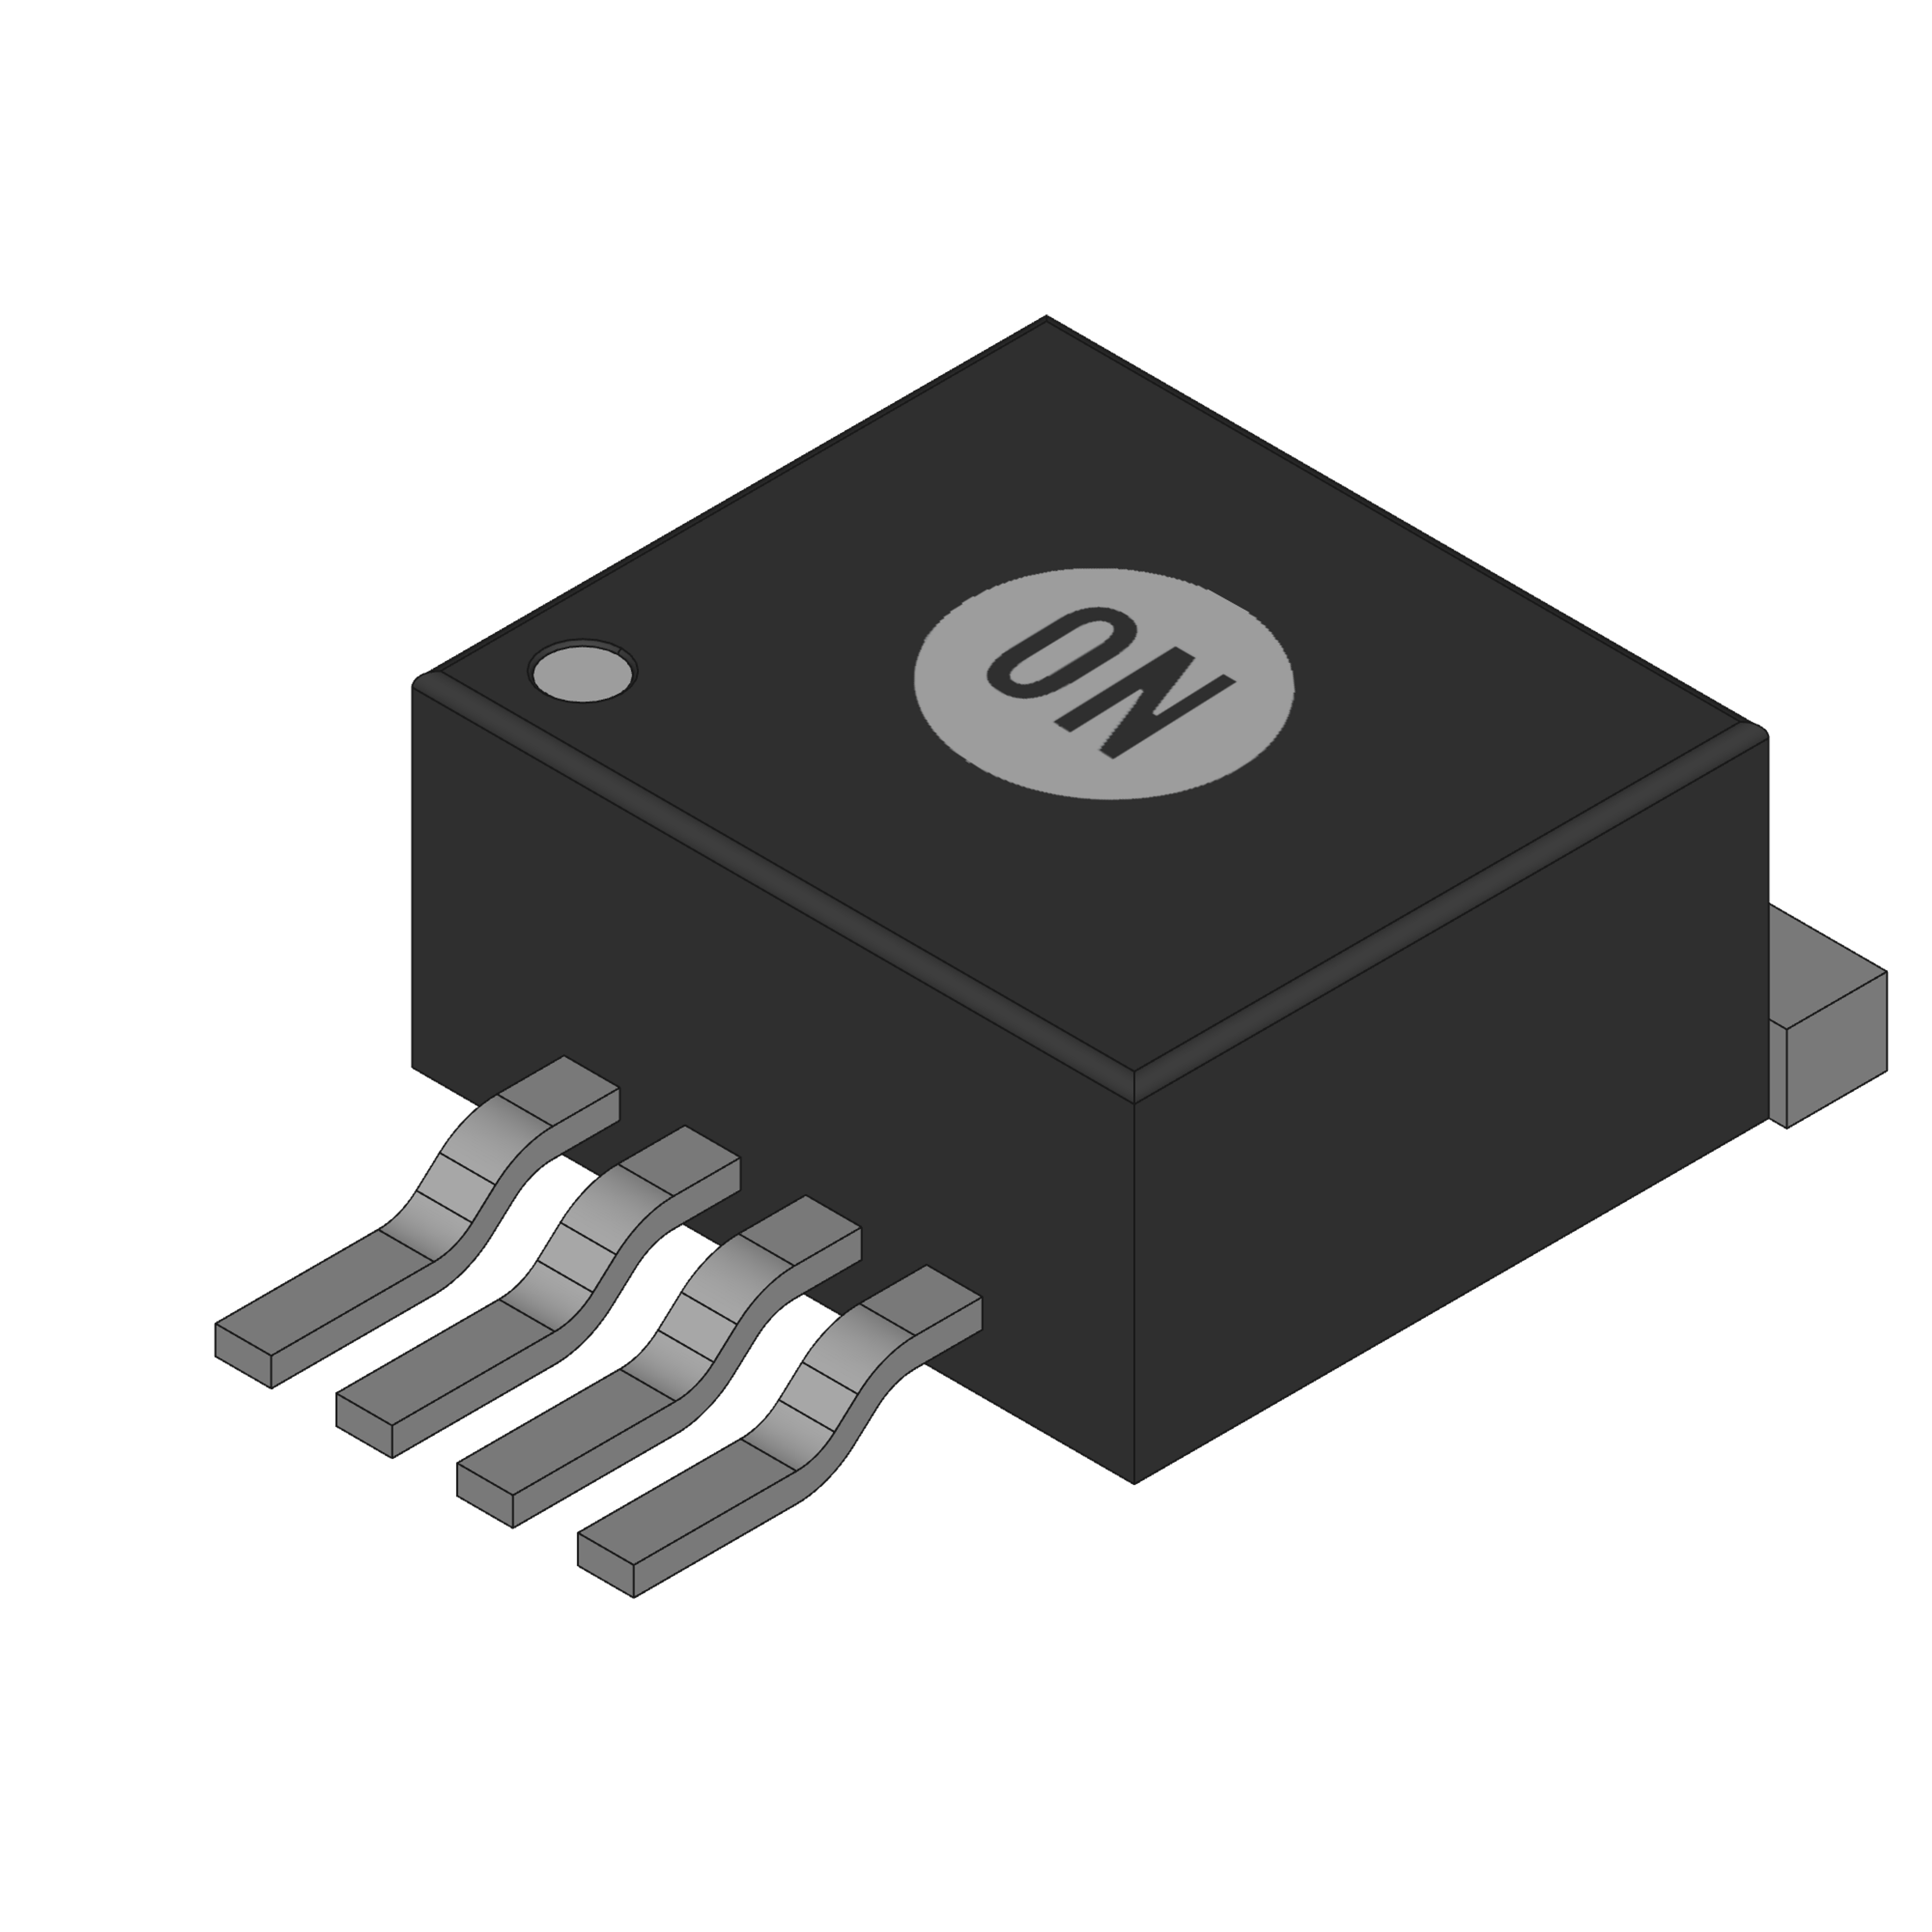 Image of Rochester Electronics' LM2576T-ADJ